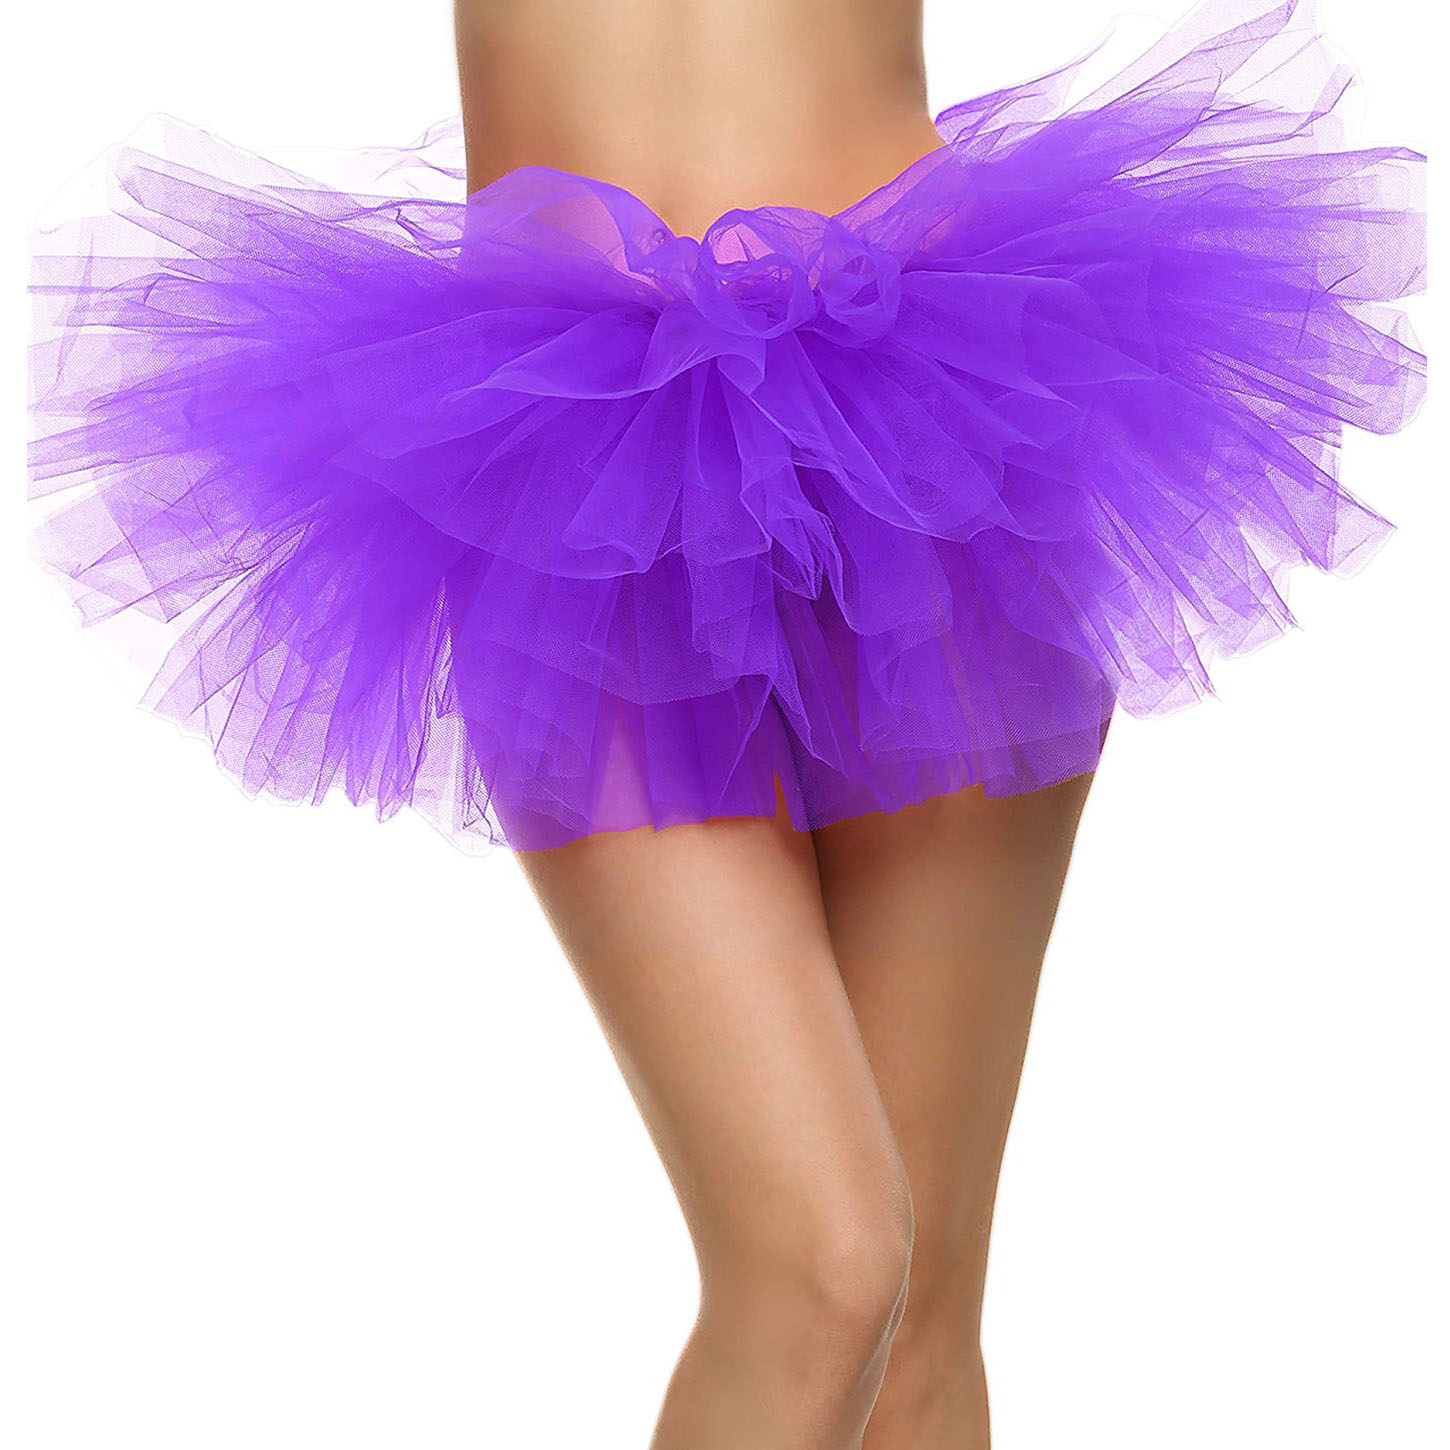 Women's Vintage 5-layered Run Walk Little Princess Dash Event Tutu Skirt, Rose